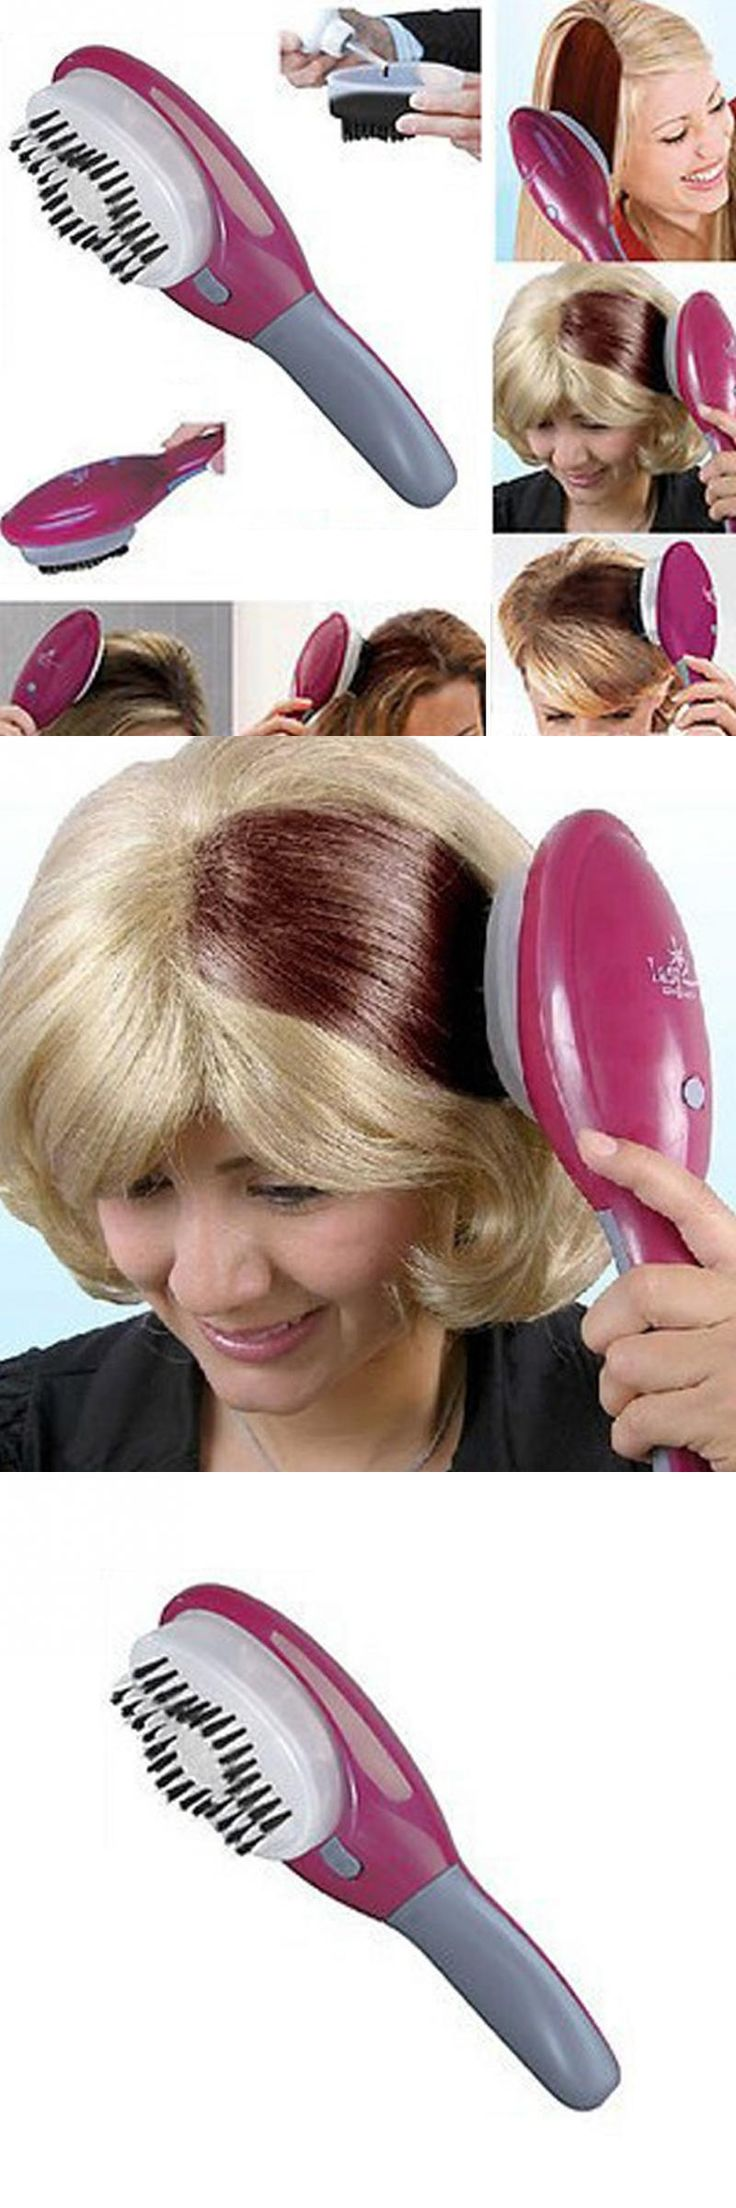 2017 New Arrival  Professional Hairdressing Brush Styling Tools  Hair Coloring Brush Color Hair Dyeing Comb